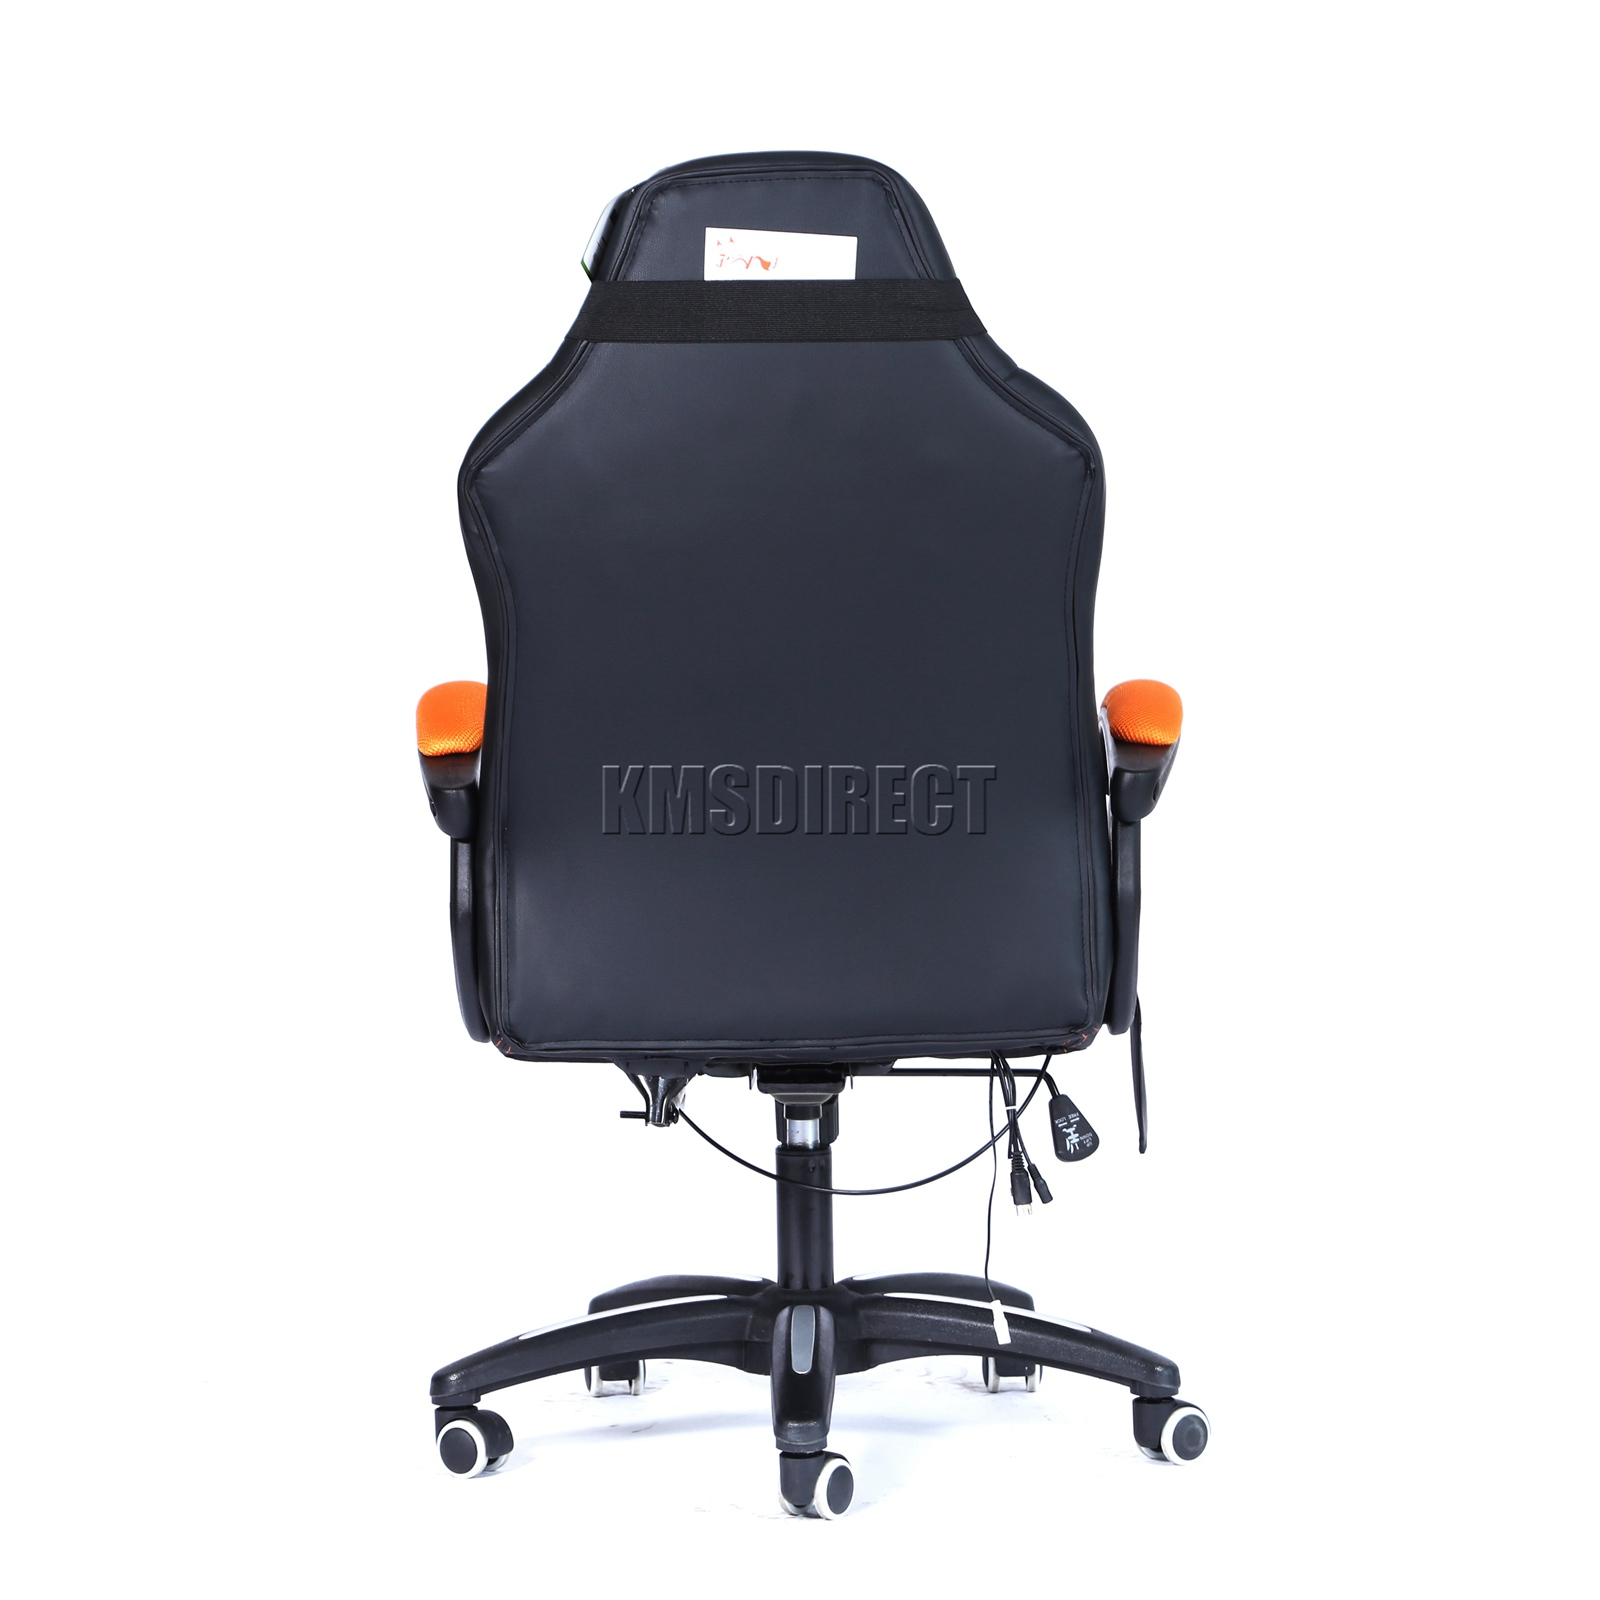 WestWood-Heated-Massage-Office-Chair-Gaming-amp-Computer-Recliner-Swivel-MC09 thumbnail 30